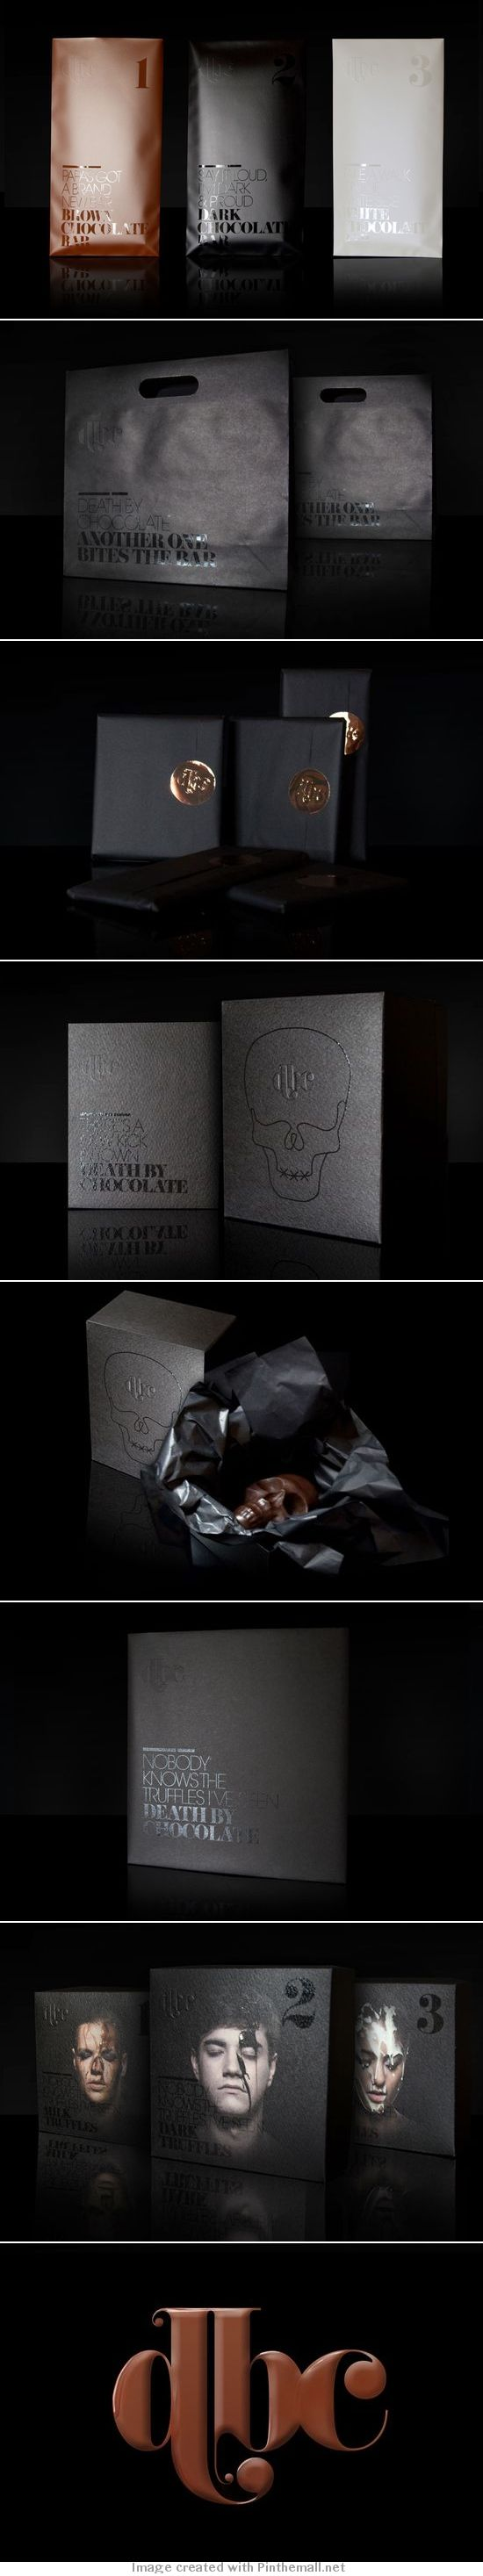 Death by chocolate packaging just for you and curated by Packaging Diva PD : )